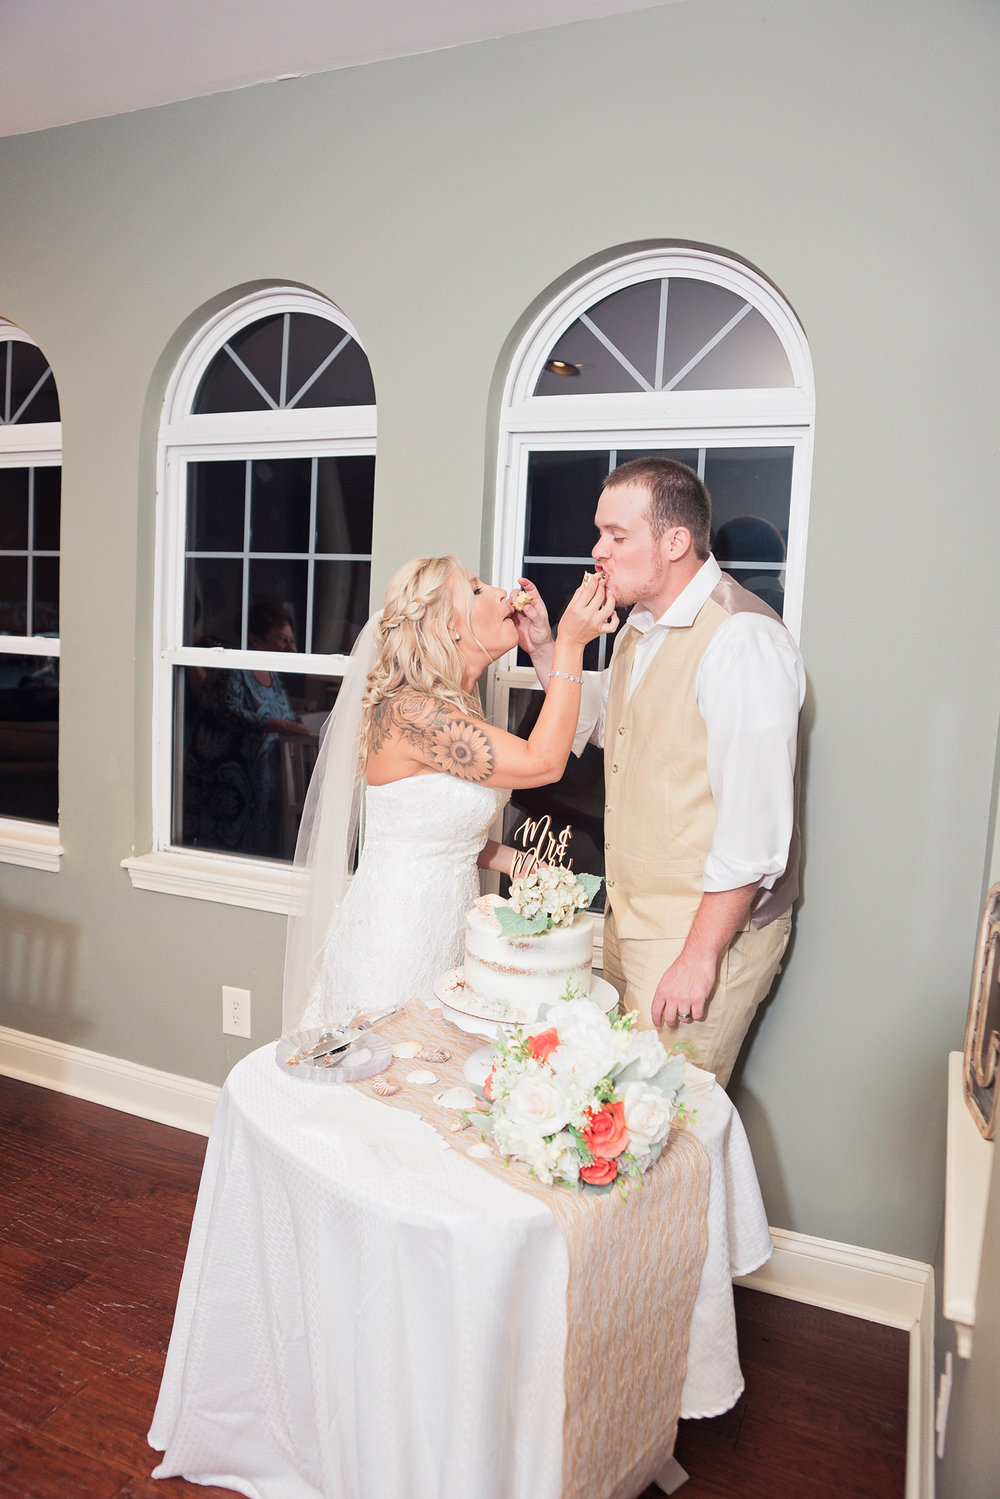 Cake_and_party (17).jpg